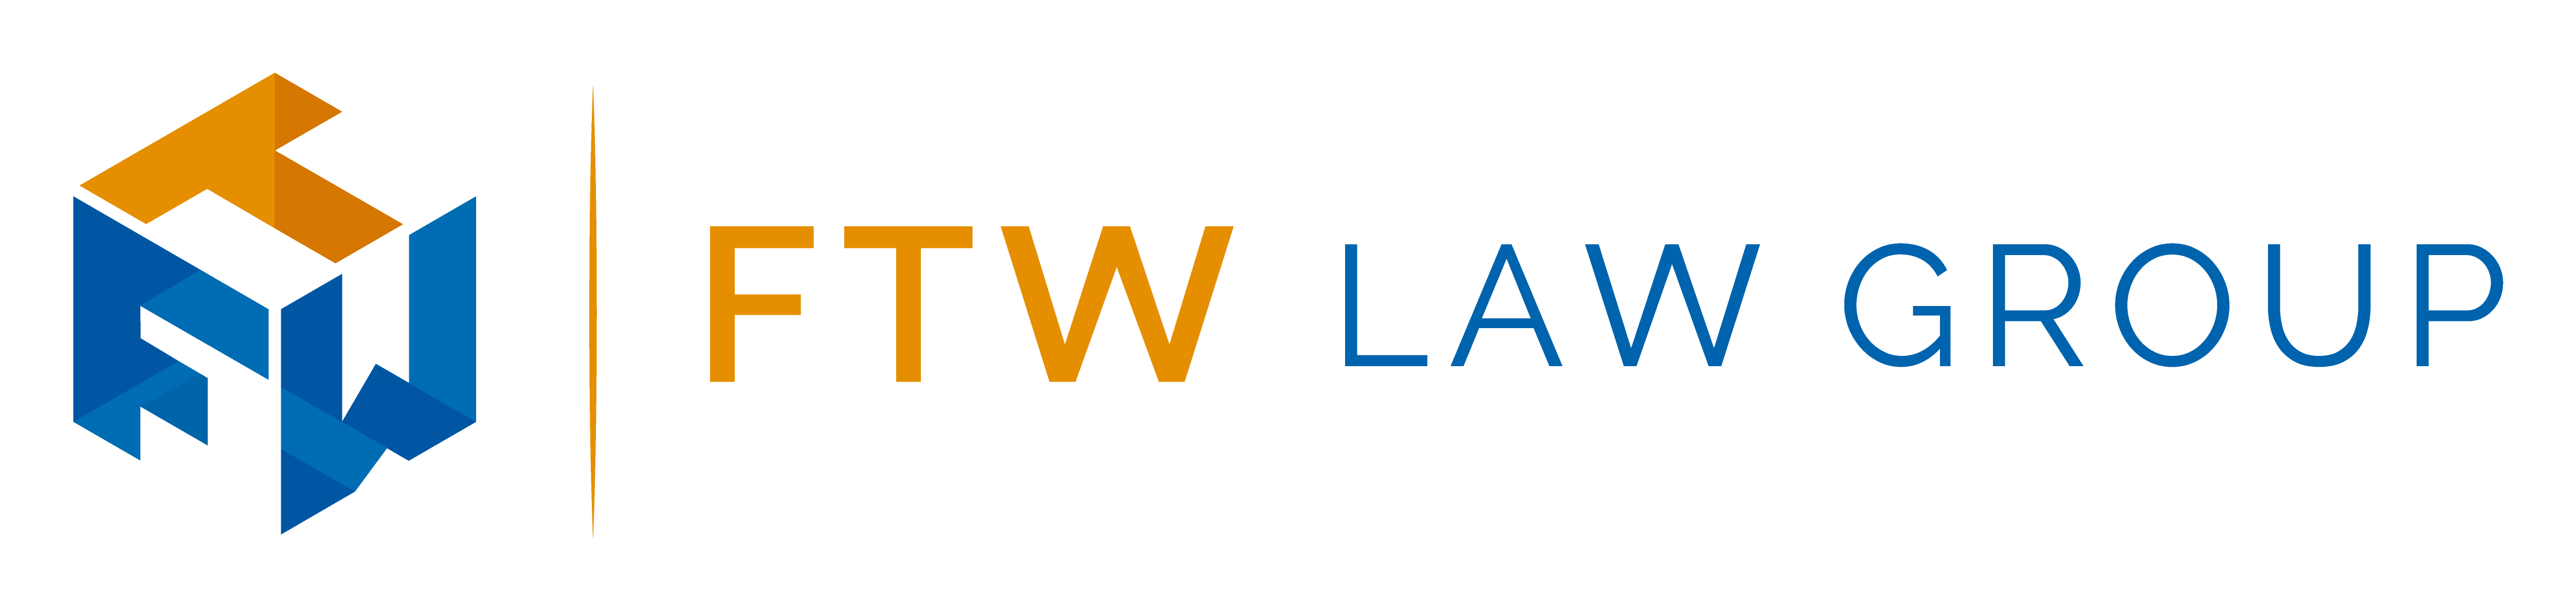 Experienced litigation lawyer seeks logo for new solo law firm